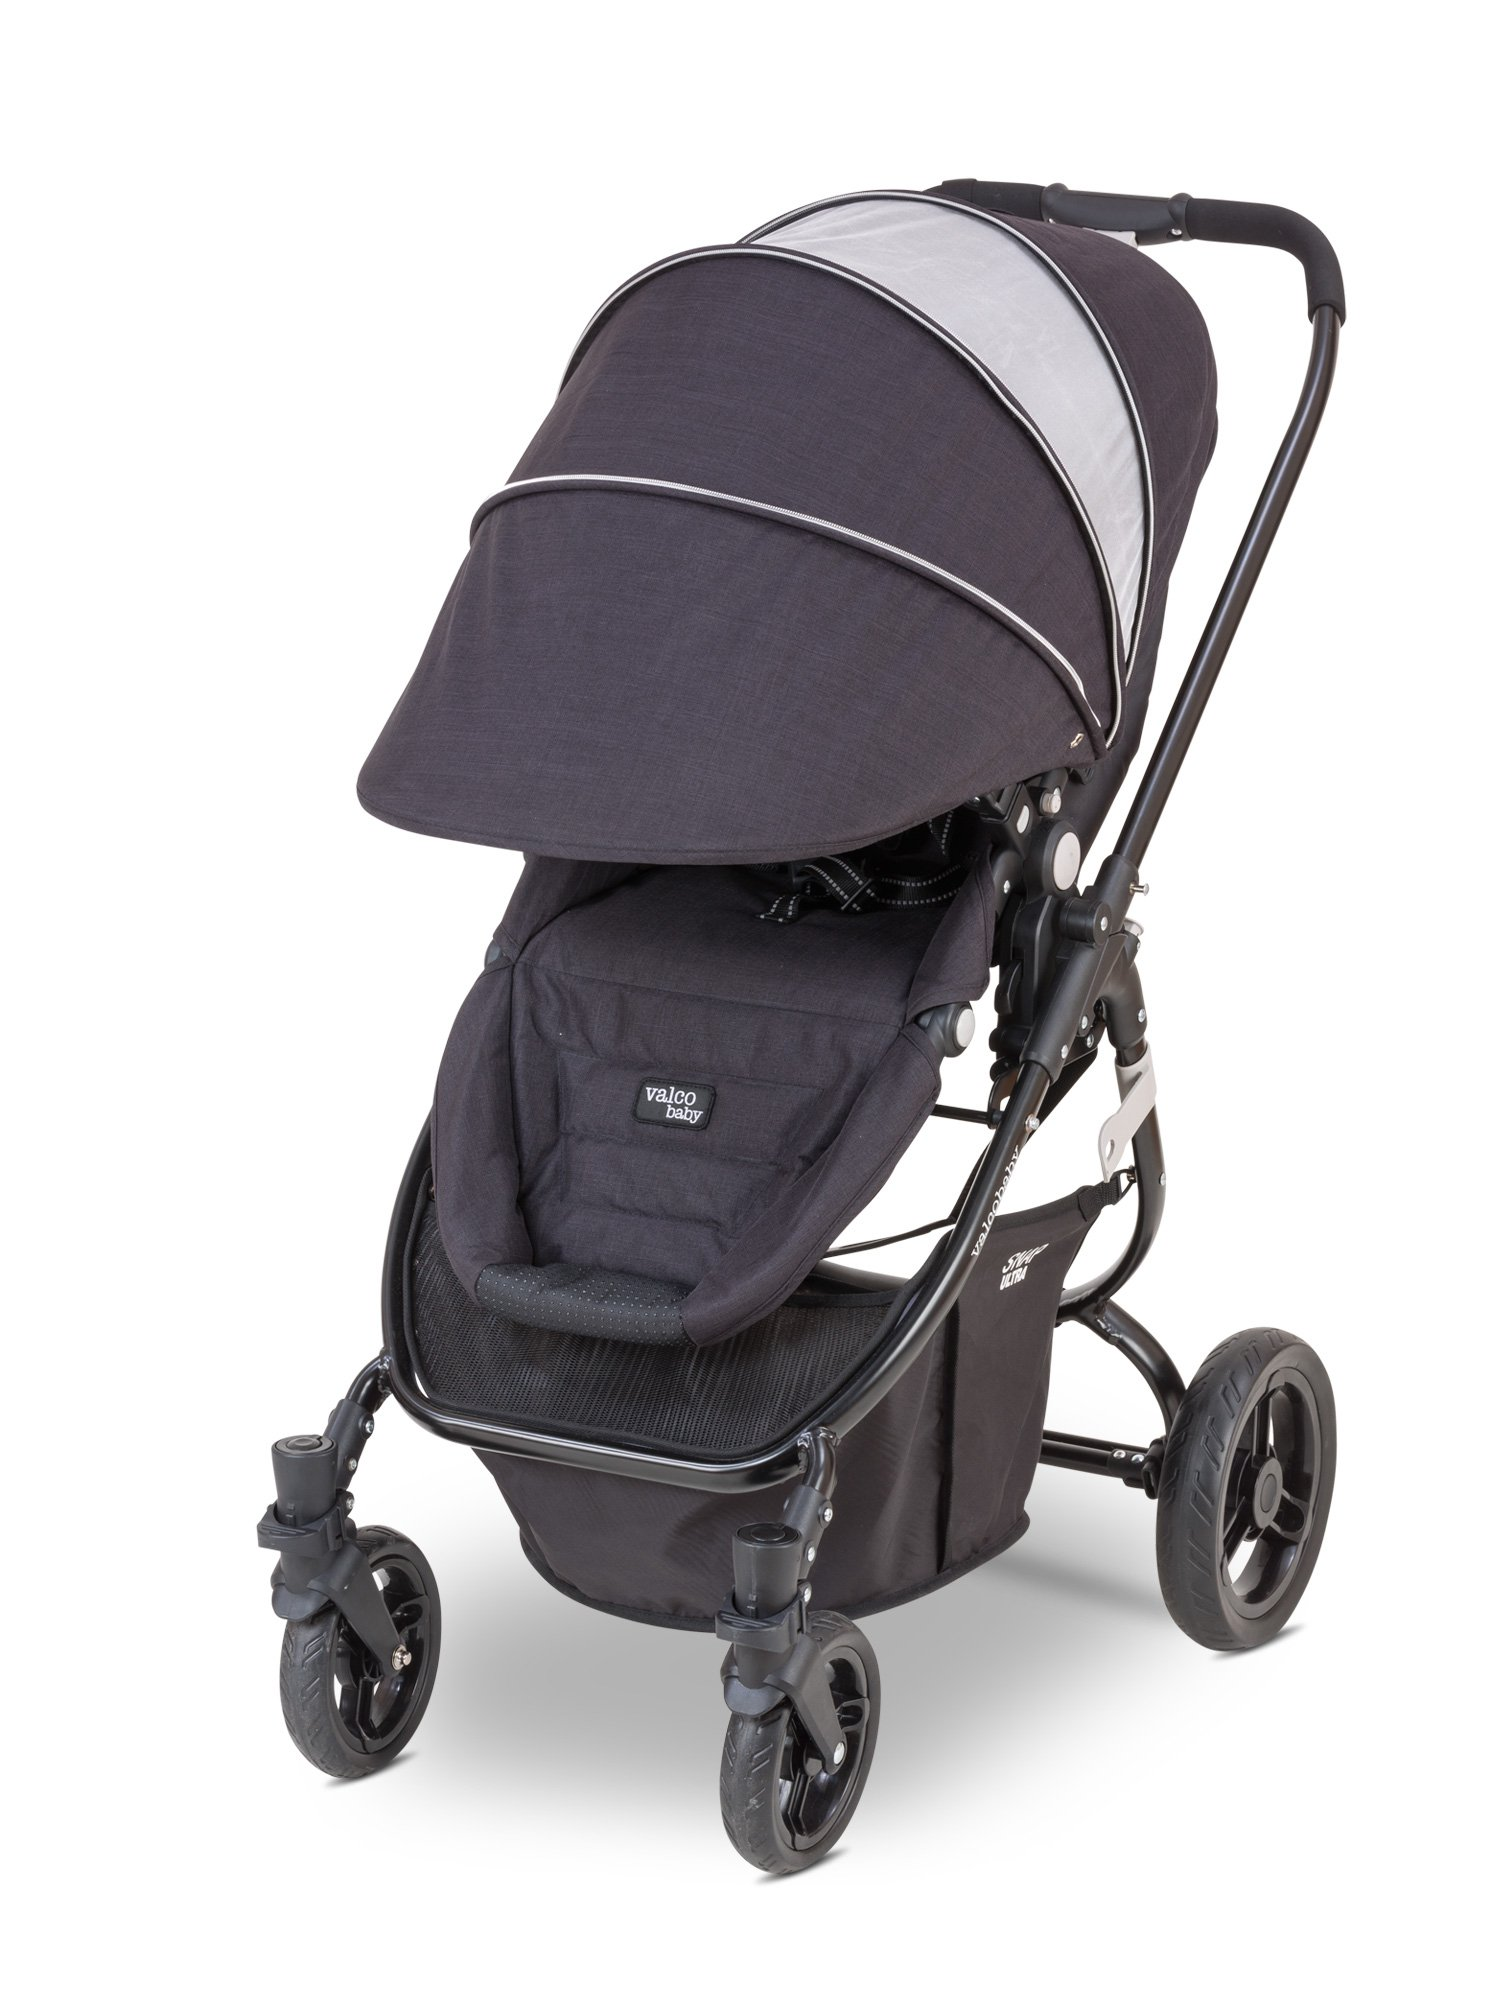 Valco Baby Snap Ultra Lightweight Reversible Stroller (Black Night) by Valco Baby (Image #3)